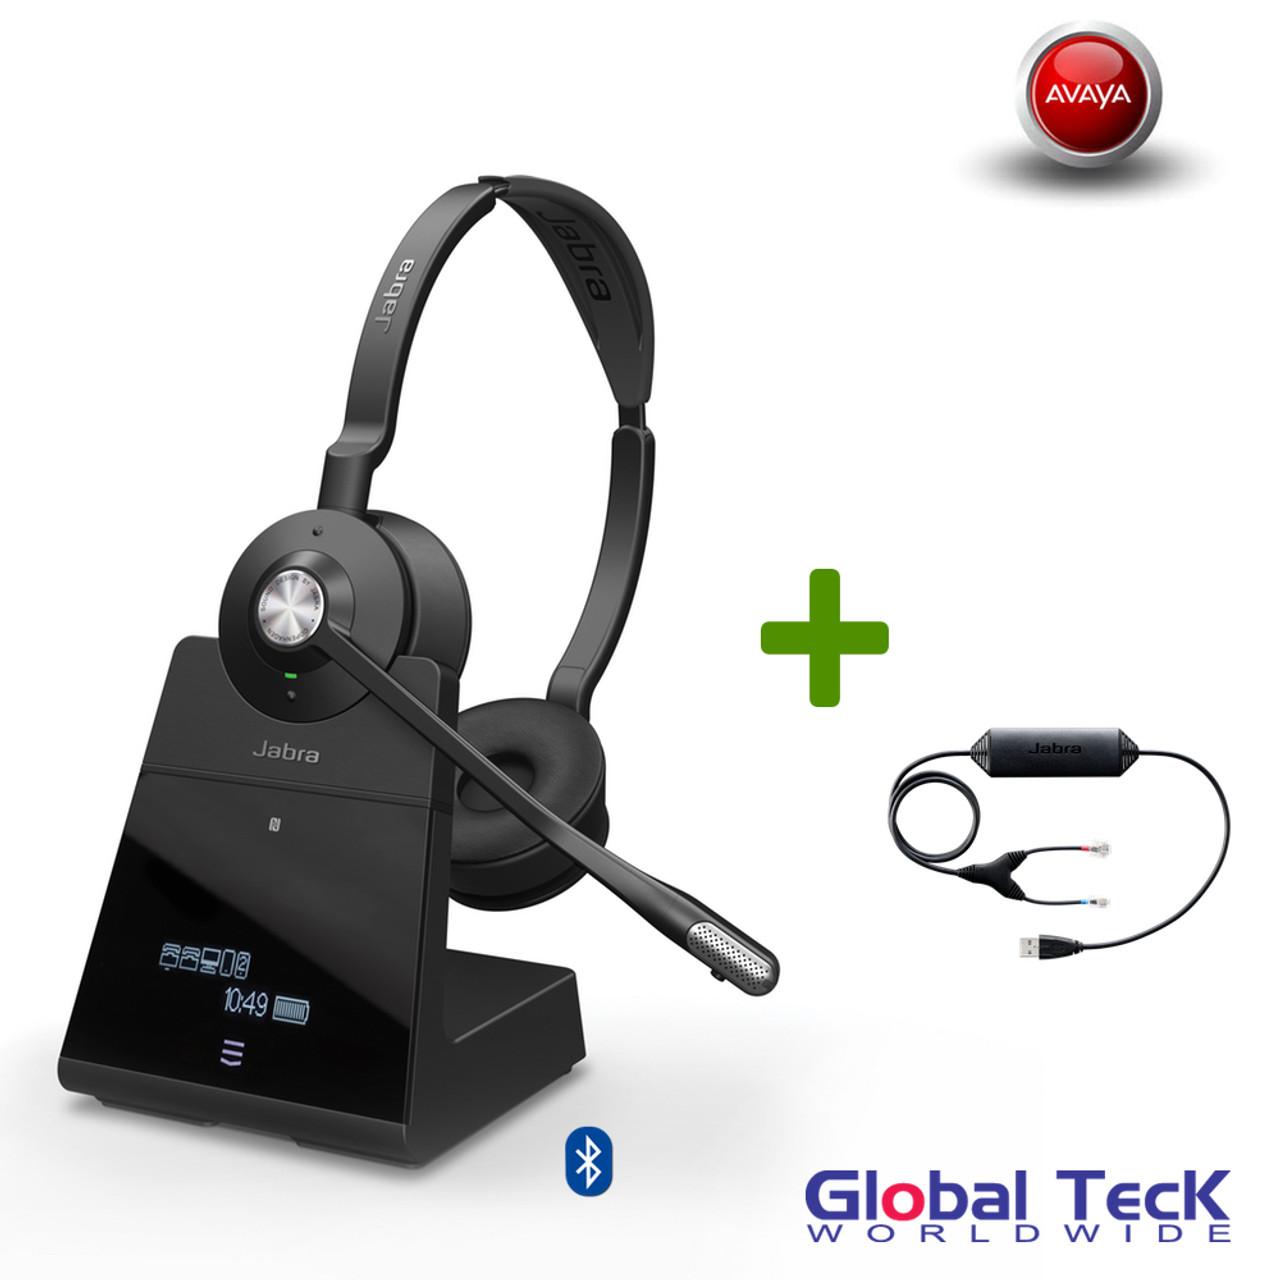 Avaya Phone Compatible Jabra Engage 75 Wireless Stereo Headset 9559 583 125 Bluetooth Pc Deskphone Usb Nfc Dect For Avaya 1120e 1140e 1150e 1165e 13 Hours Battery Integrated Busy Light Connect 5 Devices